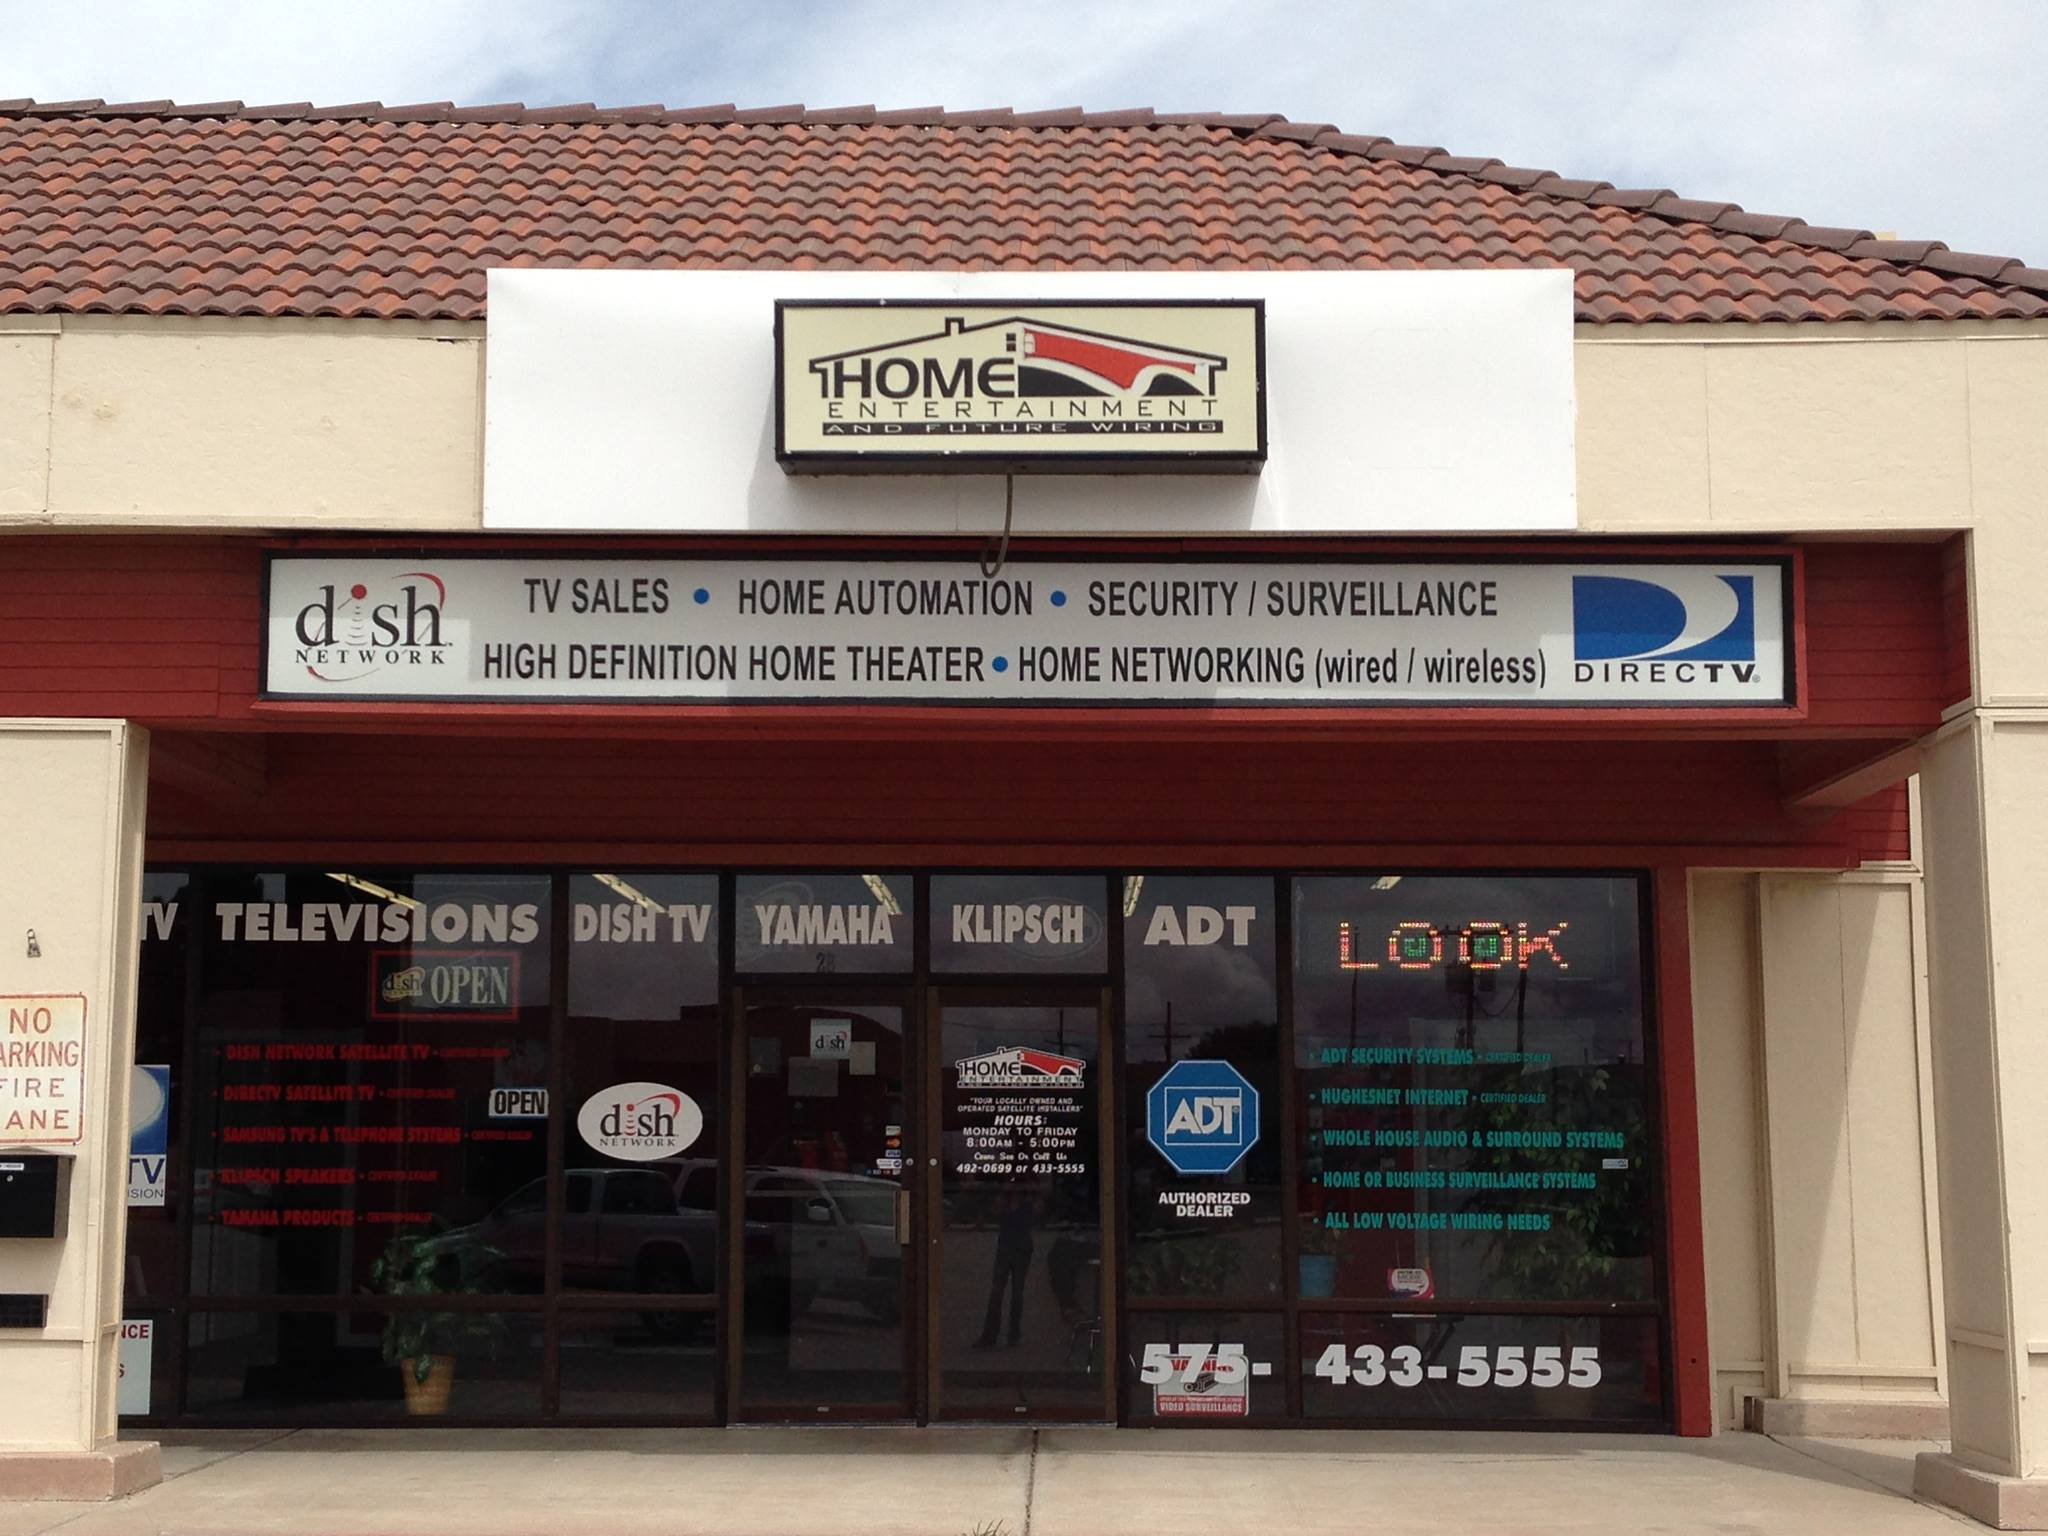 Swell Home Entertainment Future Wiring 2400 N Grimes St Ste 28B Hobbs Wiring Digital Resources Xeirawoestevosnl